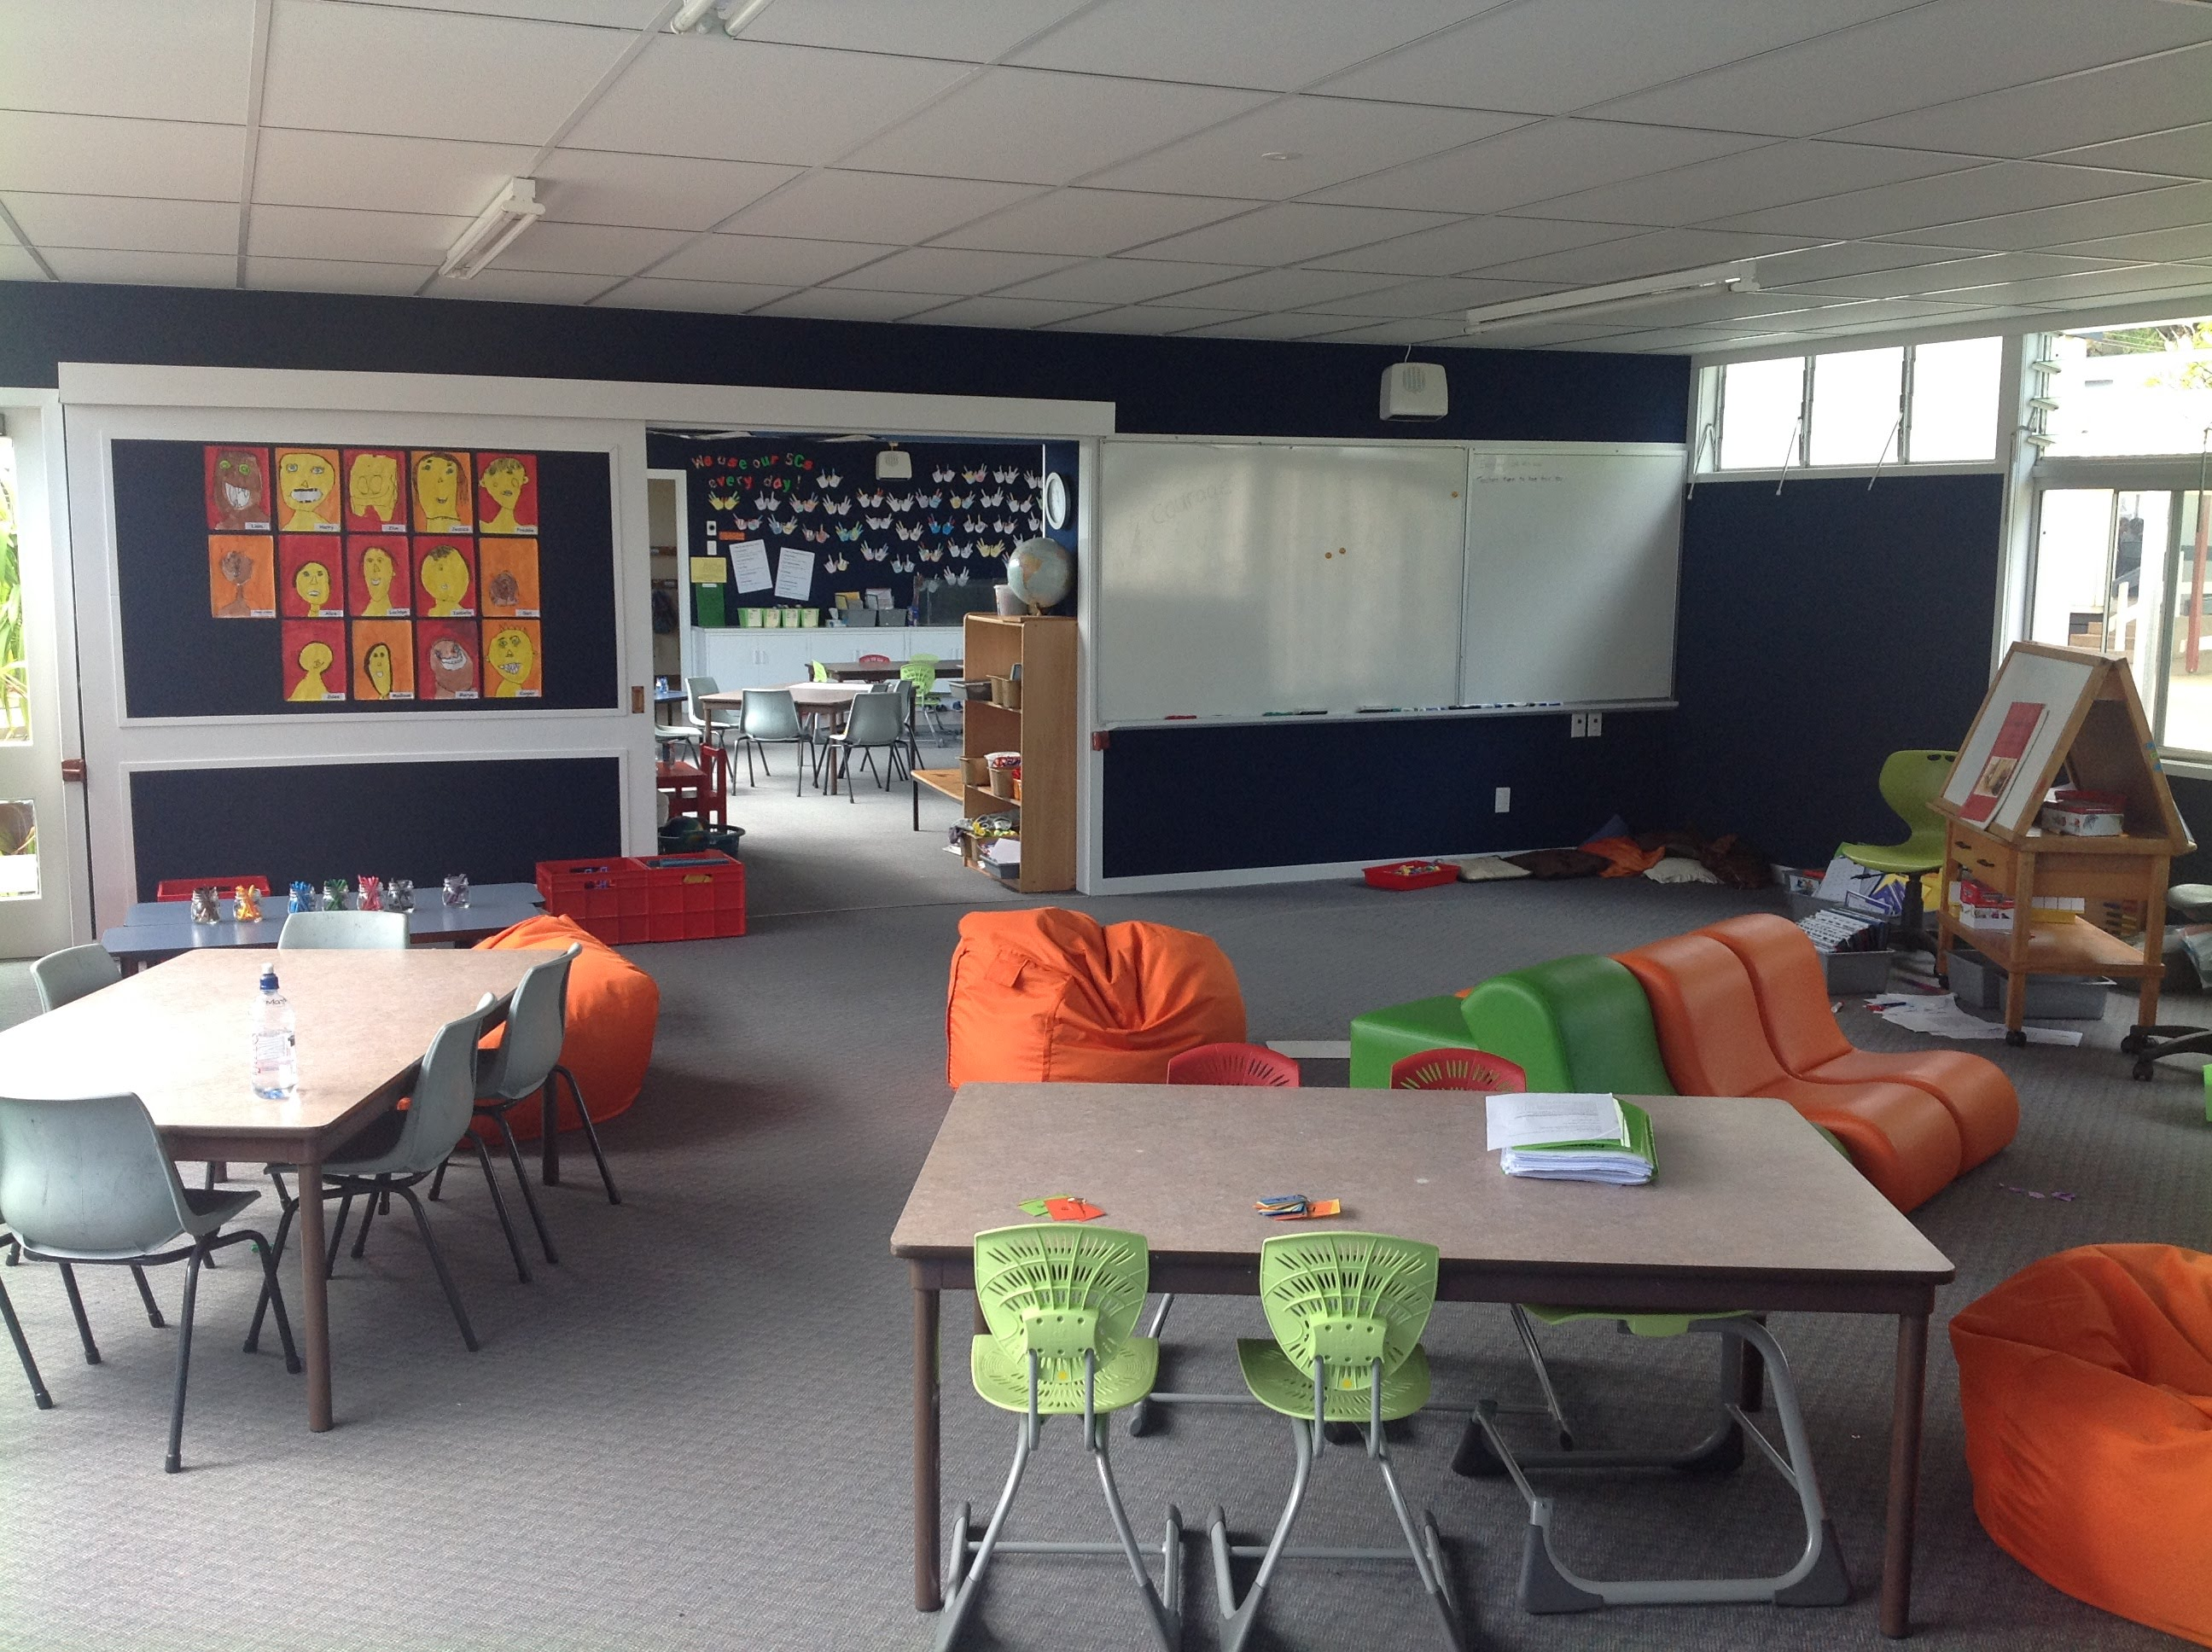 collaborative office collaborative spaces 320. Our Year 5/6 SpacesTried Out Quite A Lot Of Furniture And With The 60 Children It Looked Bit Crowded At Times. However, This Was Adapted During Collaborative Office Spaces 320 P